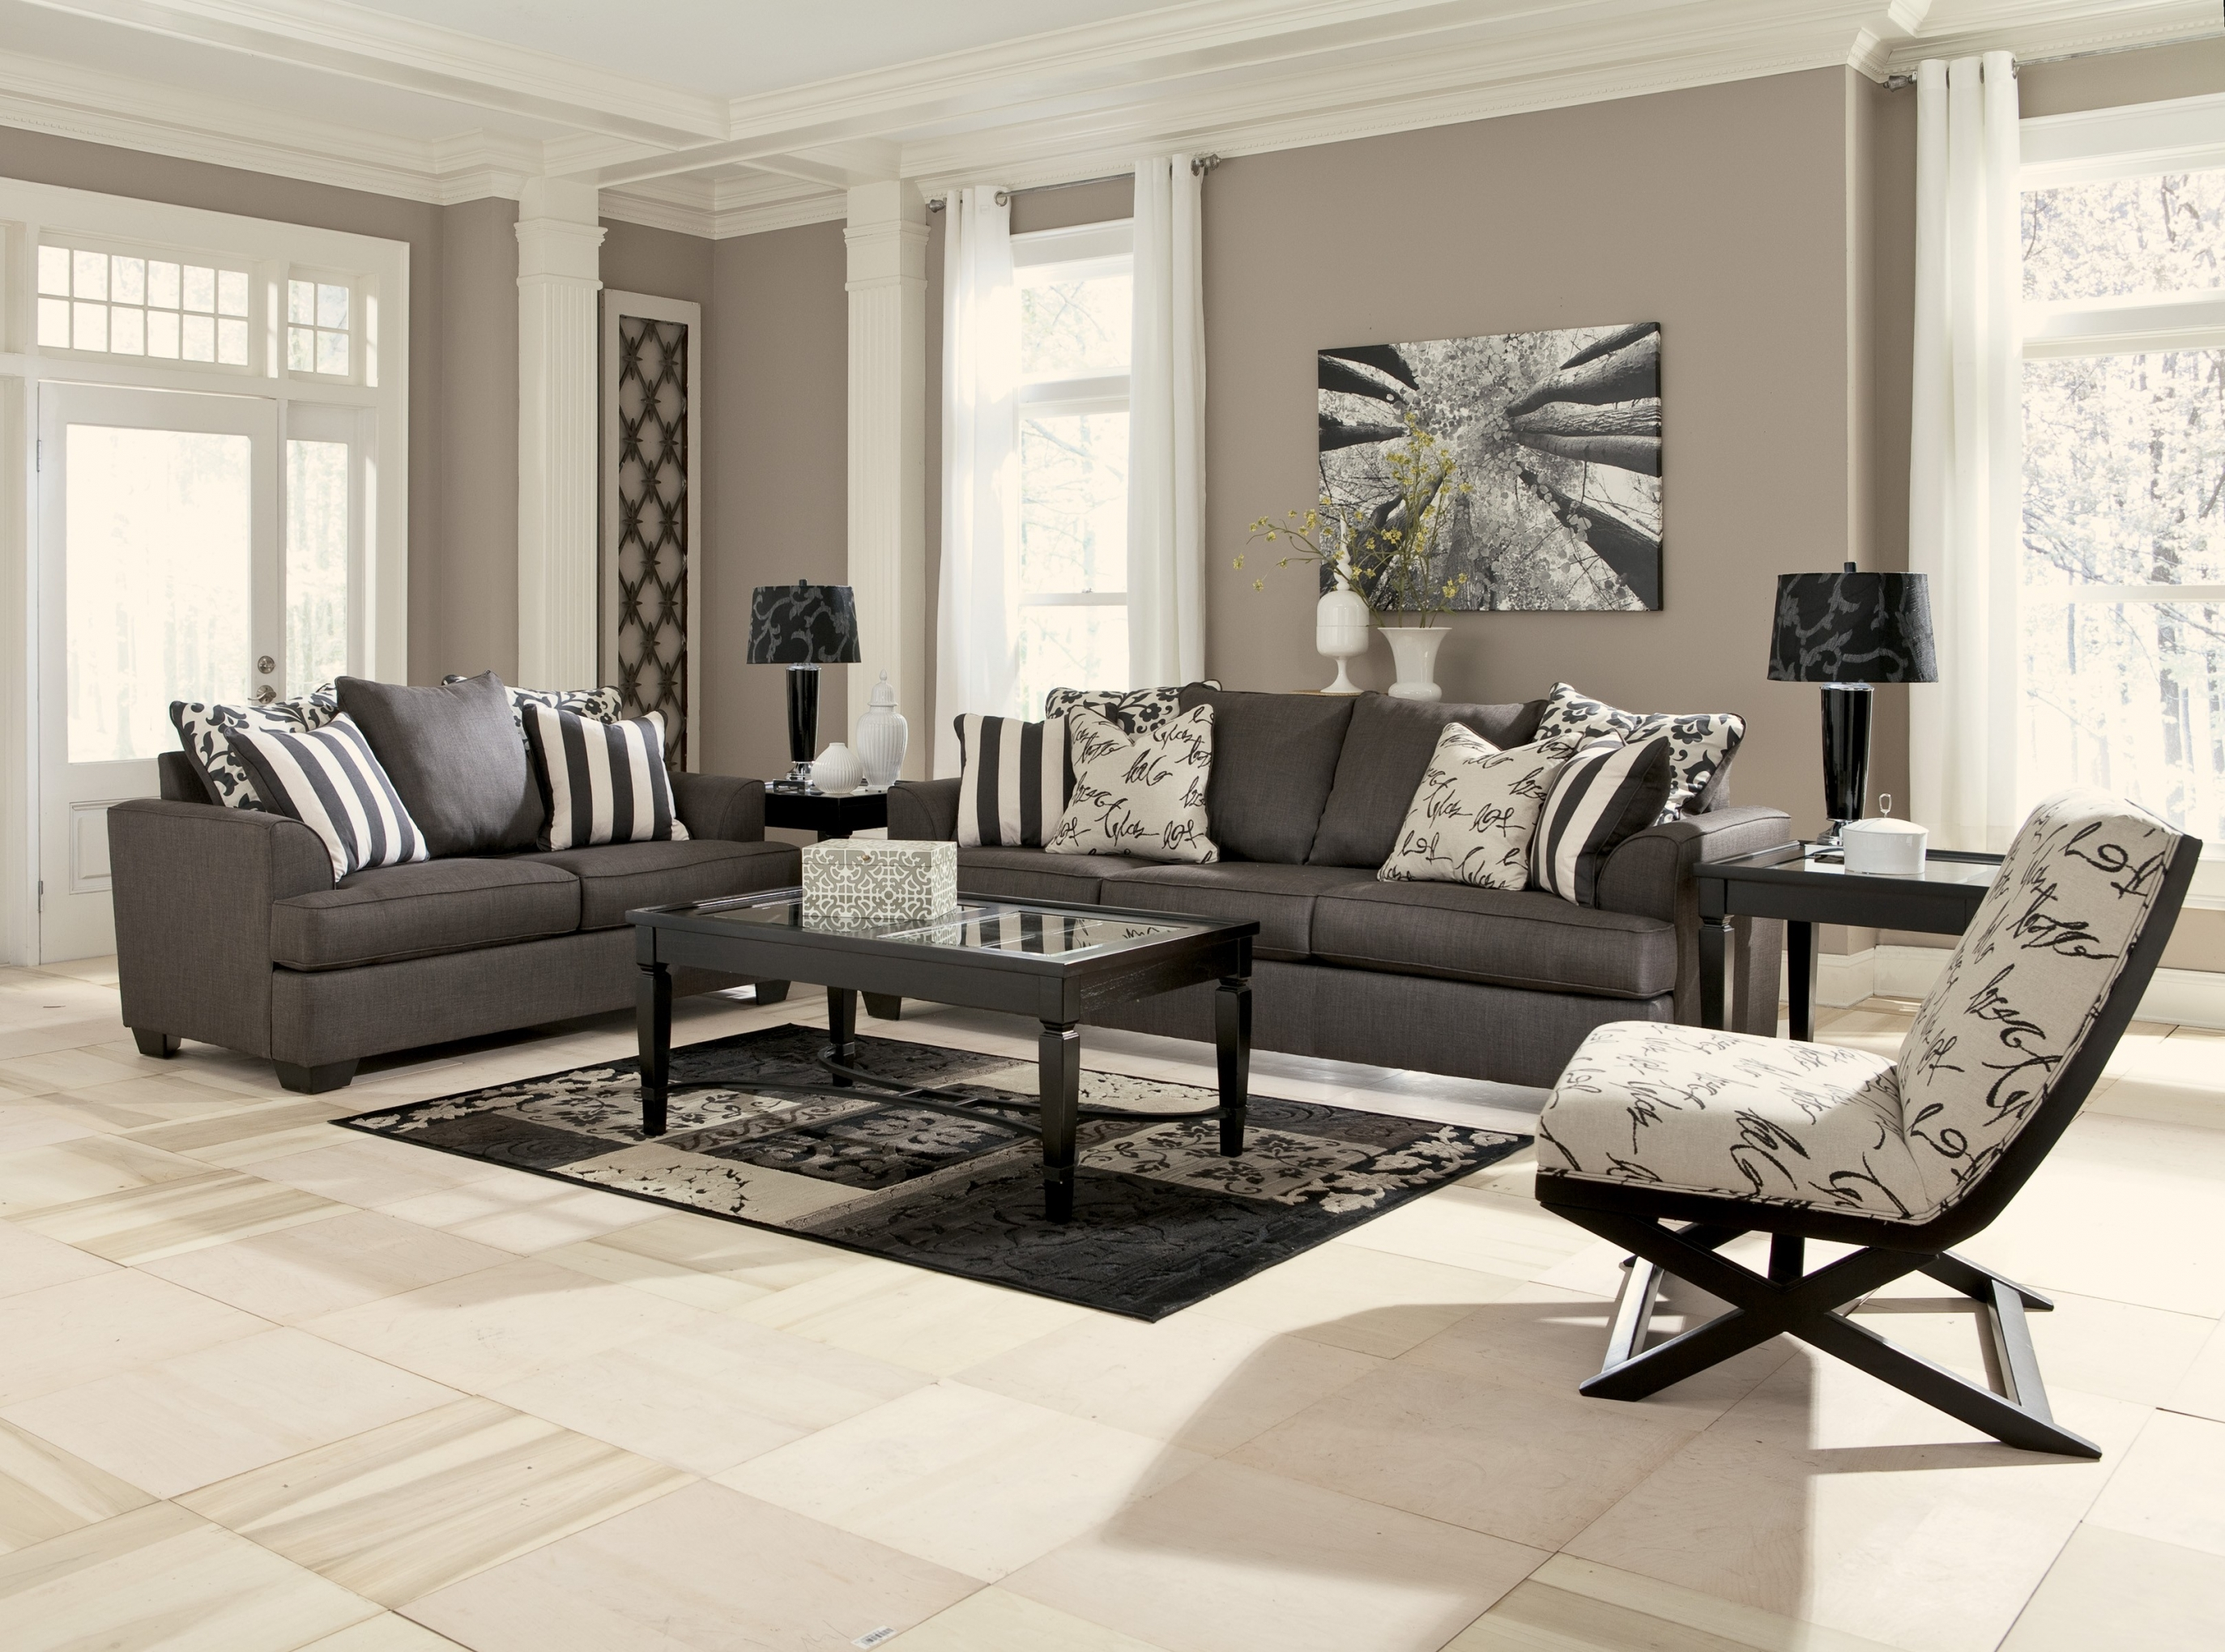 Accent Furniture For Living Room Regarding Accent Sofa Chairs (View 15 of 15)